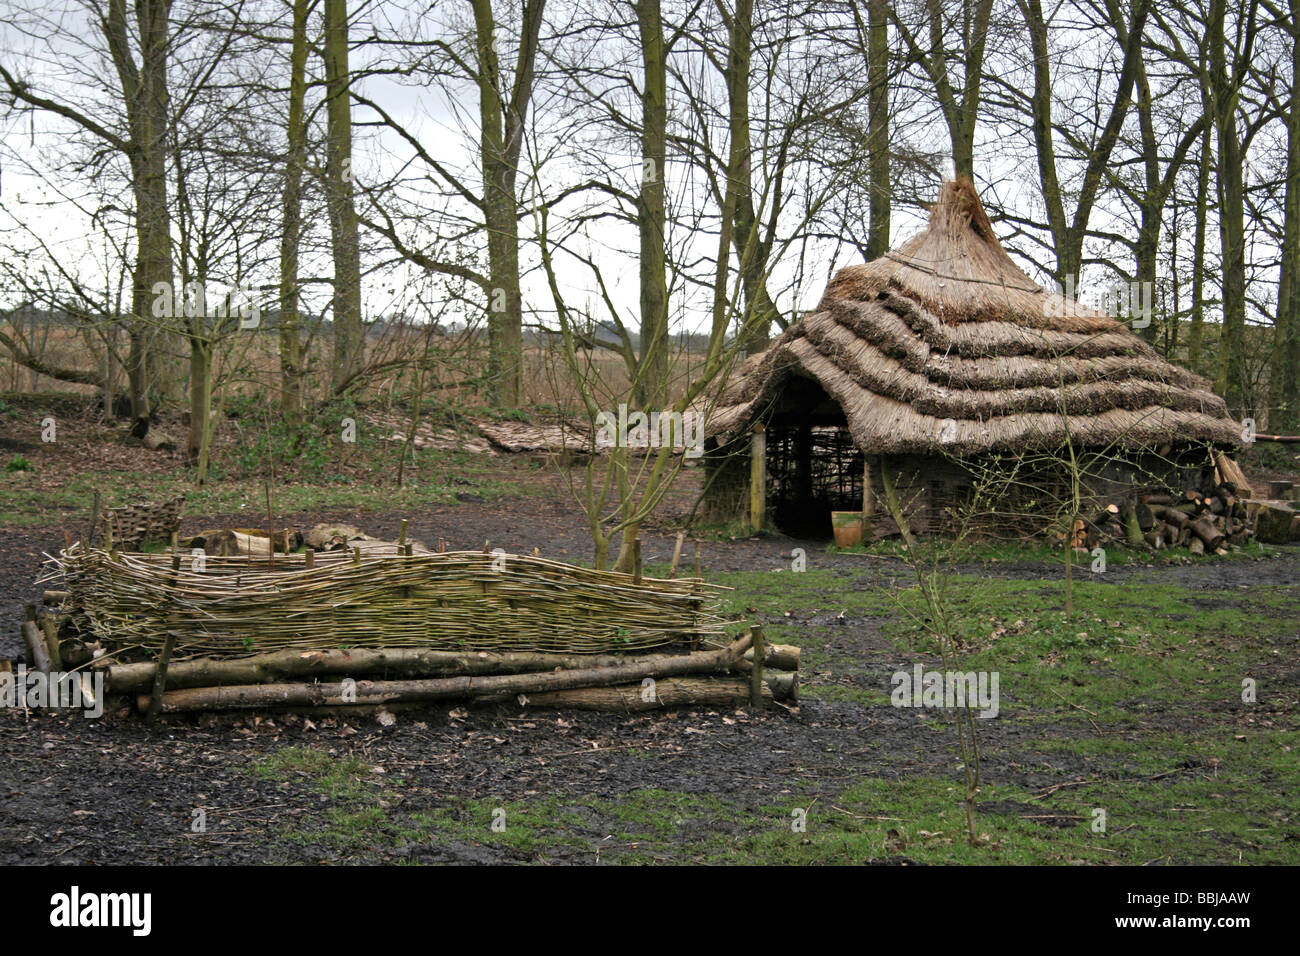 Mere Tun: A Roundhouse Village Reconstruction At Martin Mere WWT, Lancashire, UK - Stock Image